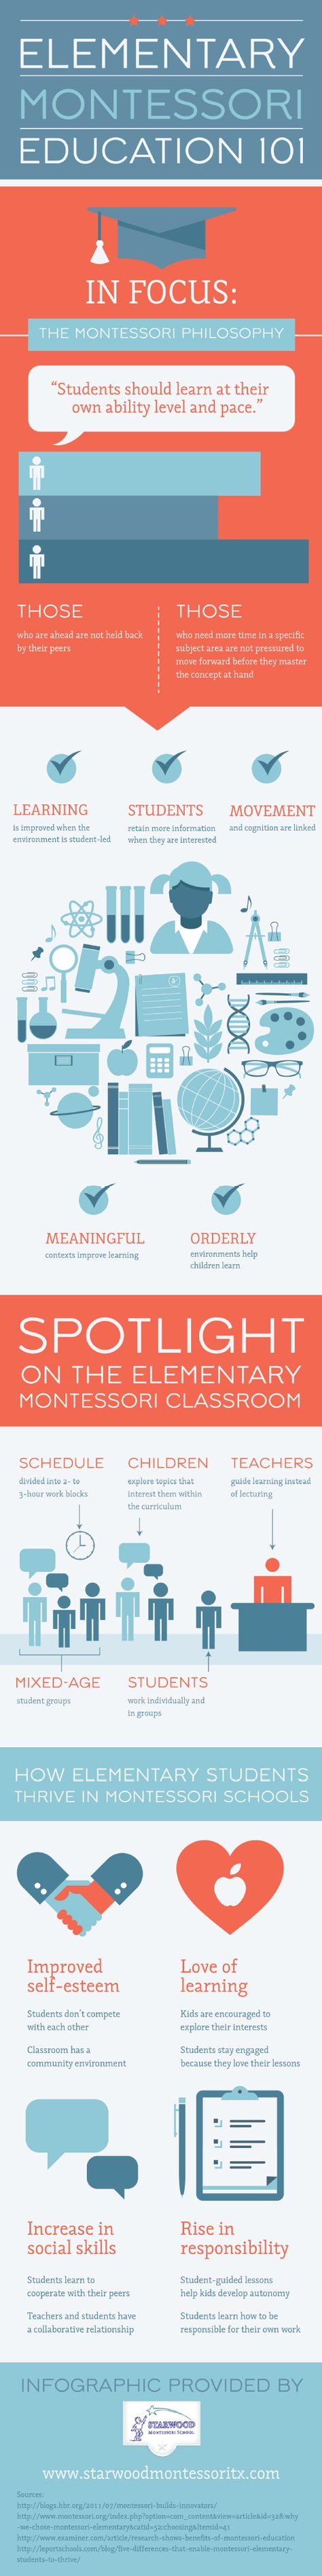 infographic Why Montessori Elementary